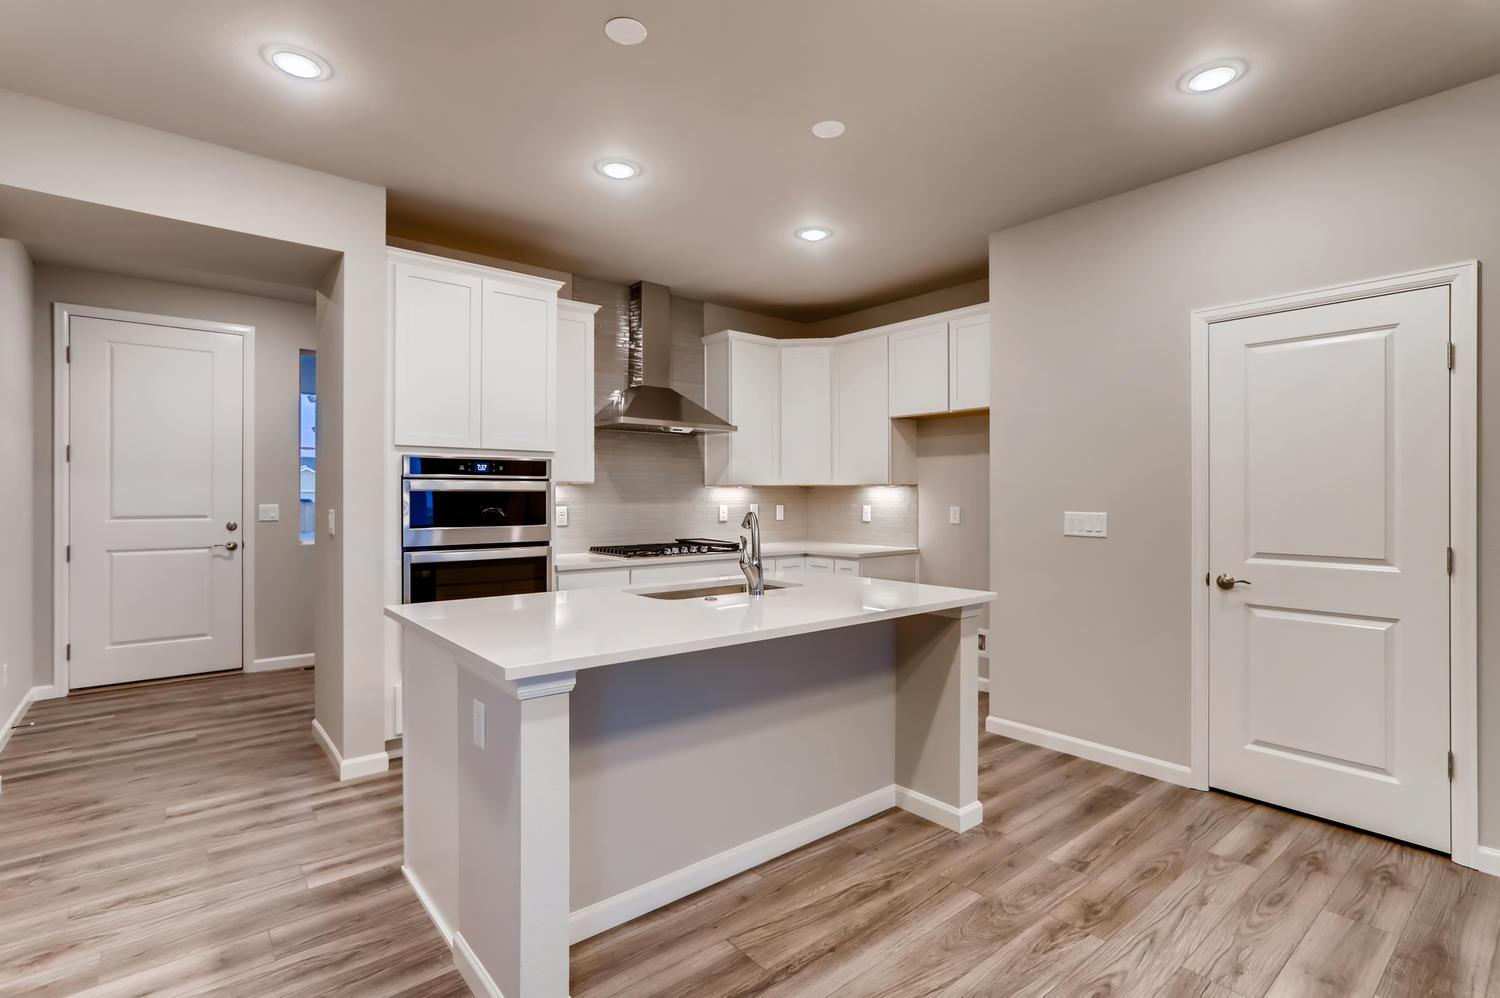 Kitchen featured in the Union By RichfieldHomes in Fort Collins-Loveland, CO